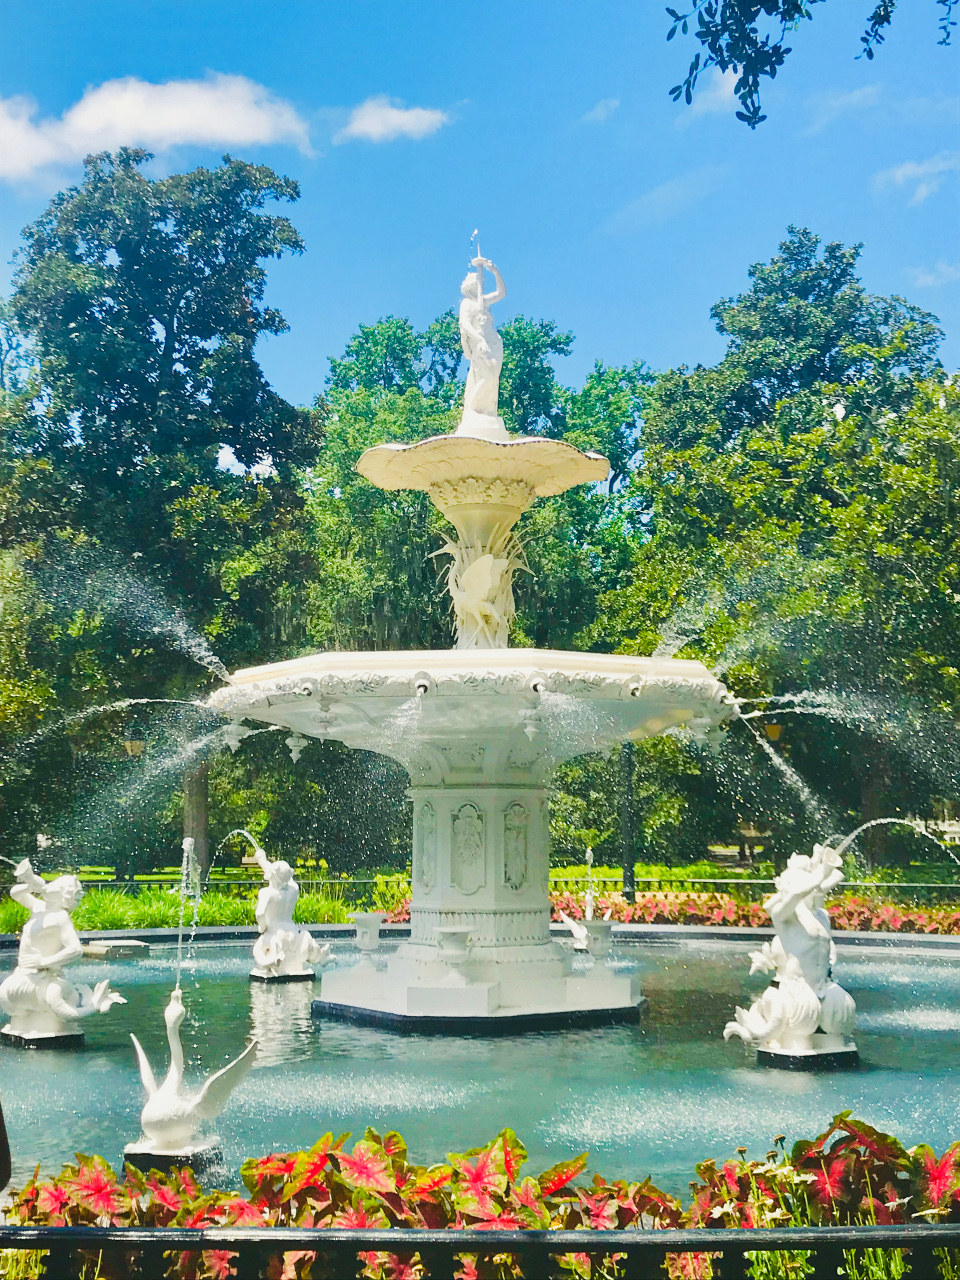 Forsyth Park is one of the famous Savannah tourist attractions. Discover the best places to visit in Savannah, Georgia, USA from this article. #savannah #georgia #usa #savannahguide